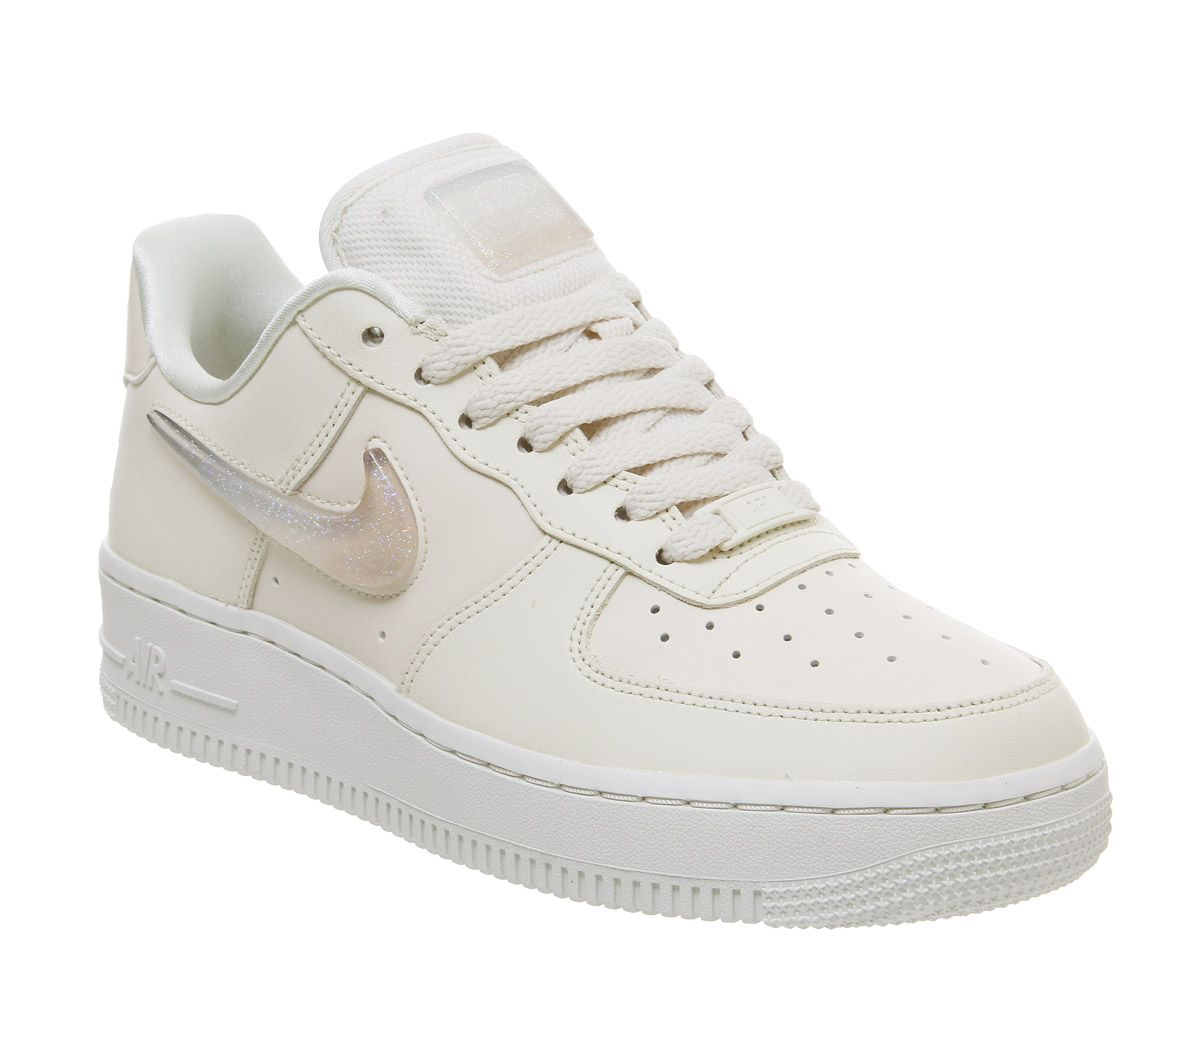 hot sale online 6c72f 7a9bf Nike Air Force 1 07 Trainers Pale Ivory Summit White Guava Ice ...